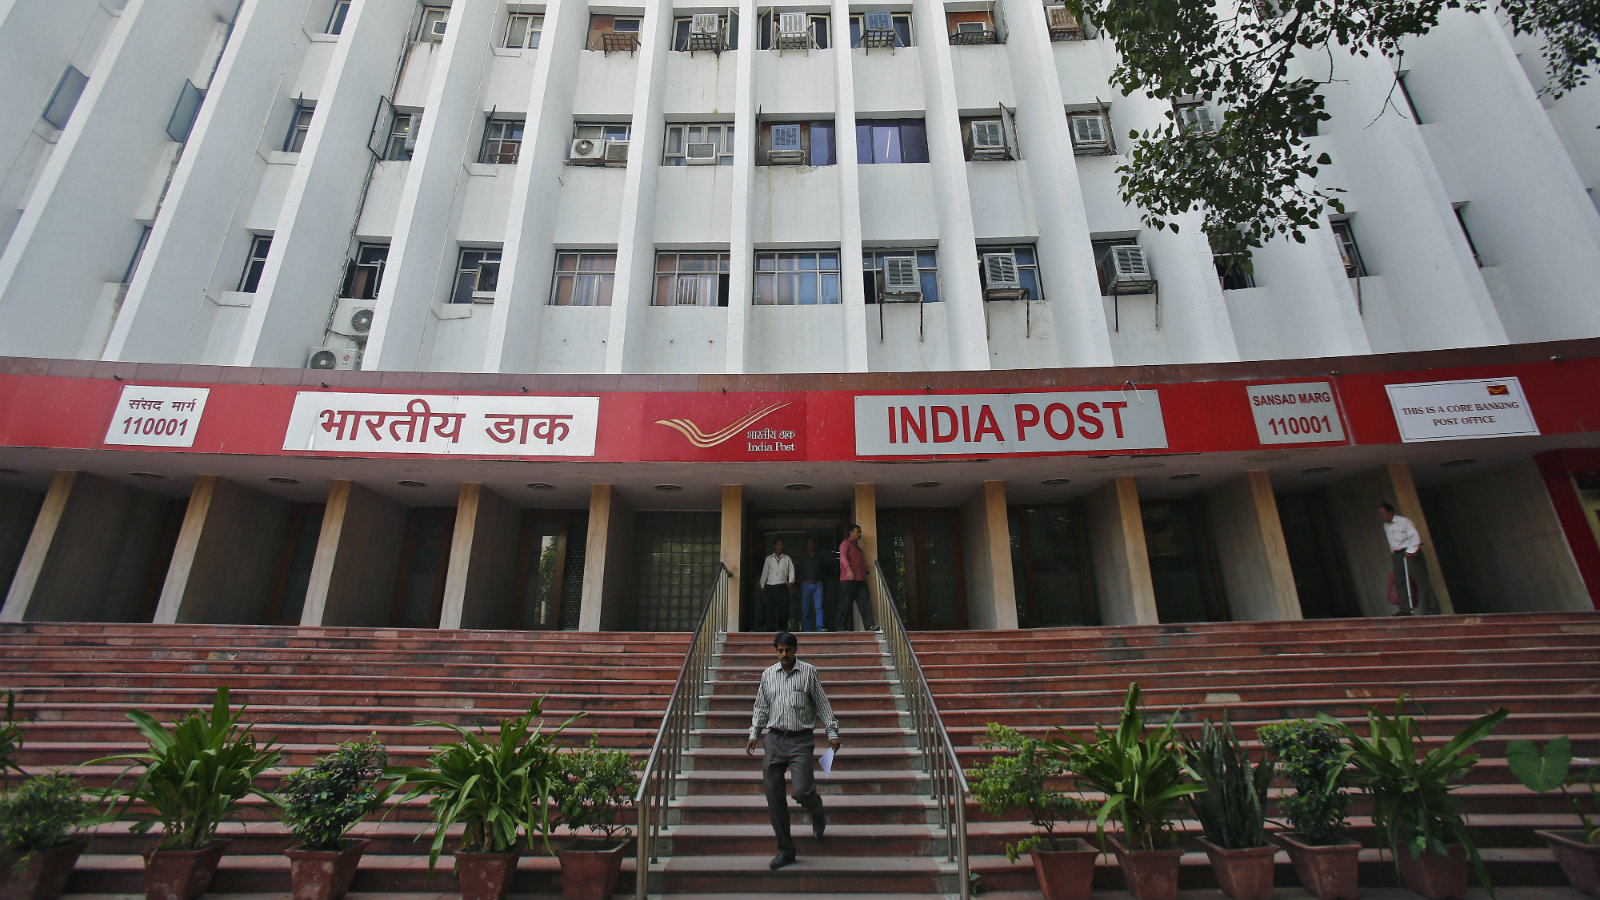 India-postal services